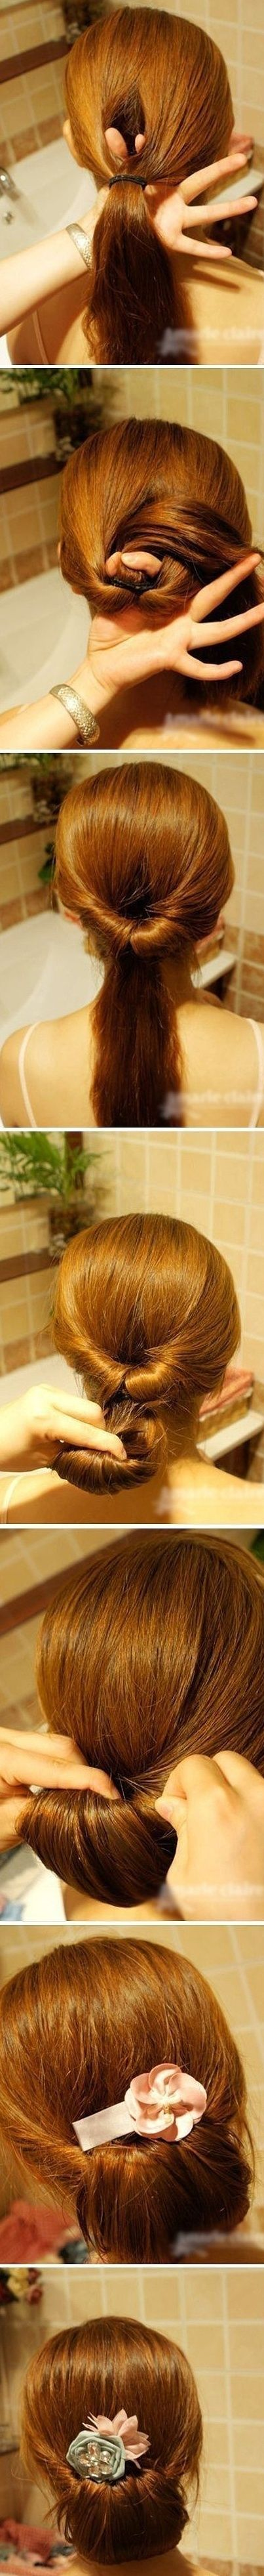 Prev5 of 5Next Easy bun hairstyle: Source @ Prev5 of 5Next